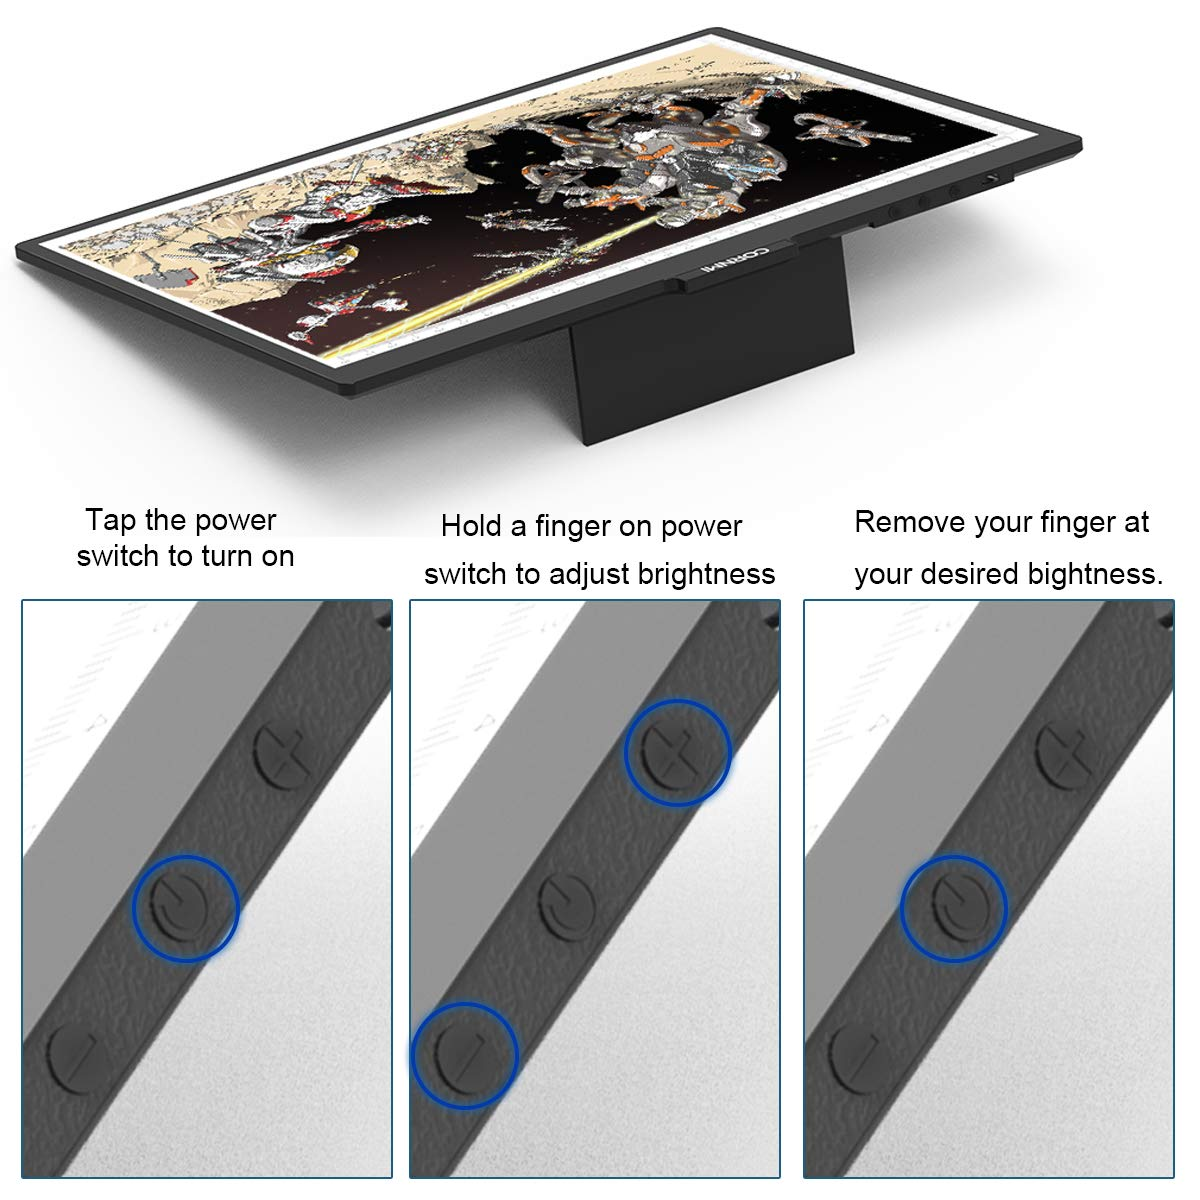 CORNMI A4 LED Light Box Tracer USB Power Light Table LED Eye-Protected for Kids Artists,X-ray,Viewing,Drawing,Animation,Sketching,Design